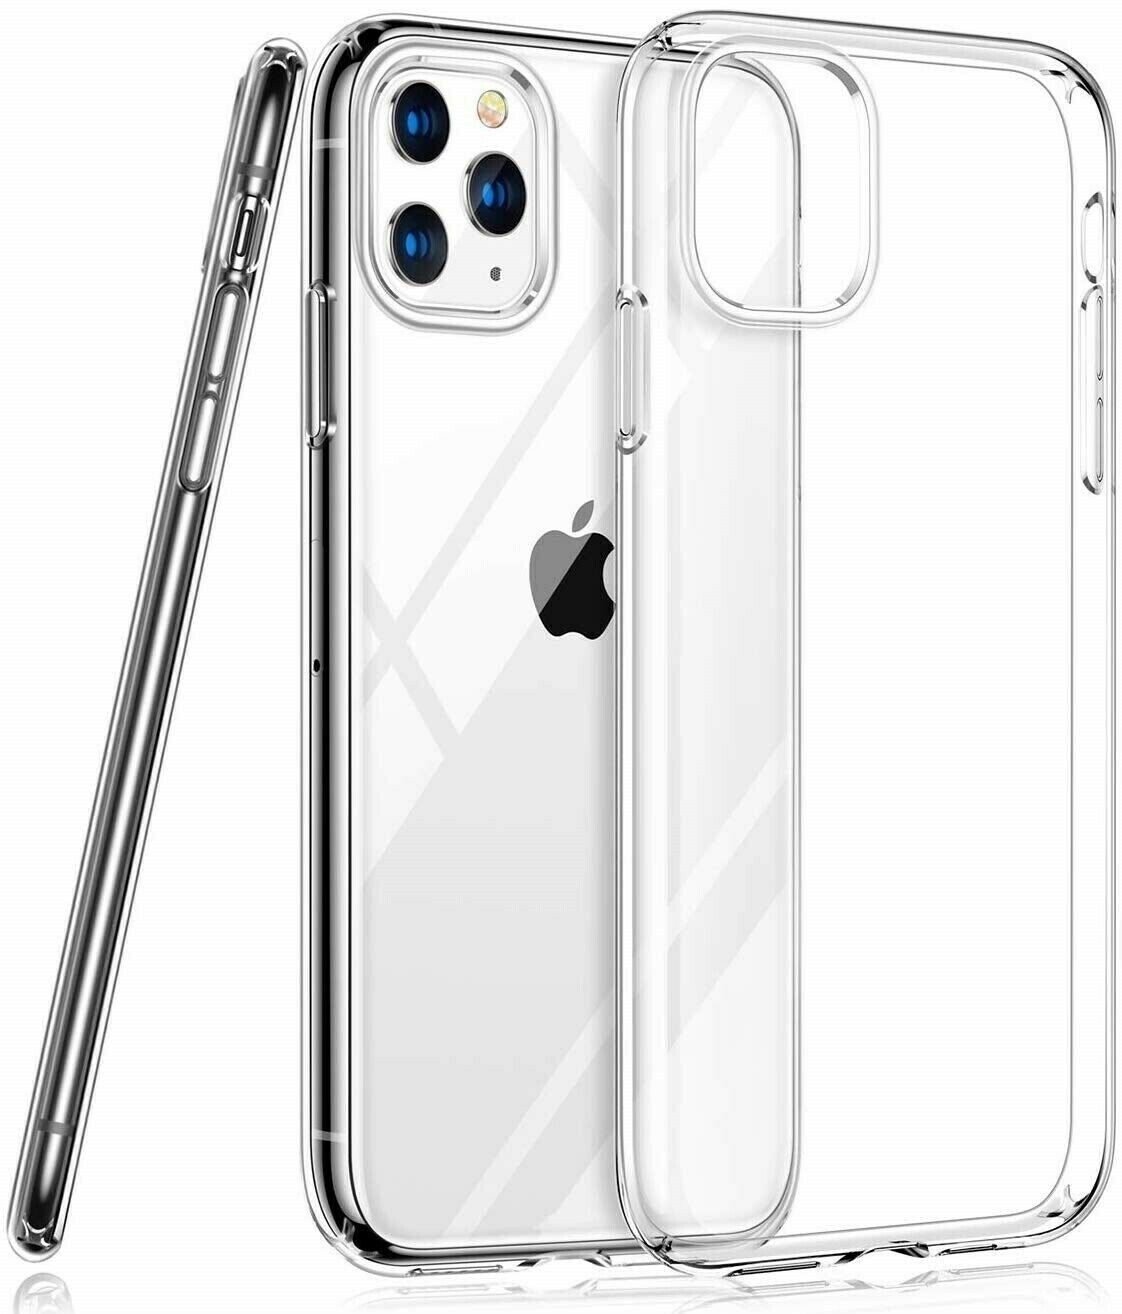 For iPhone X XS MAX XR 11 Pro MAX 7 8 Case Shockproof Silicone Bumper Cover Cases, Covers & Skins